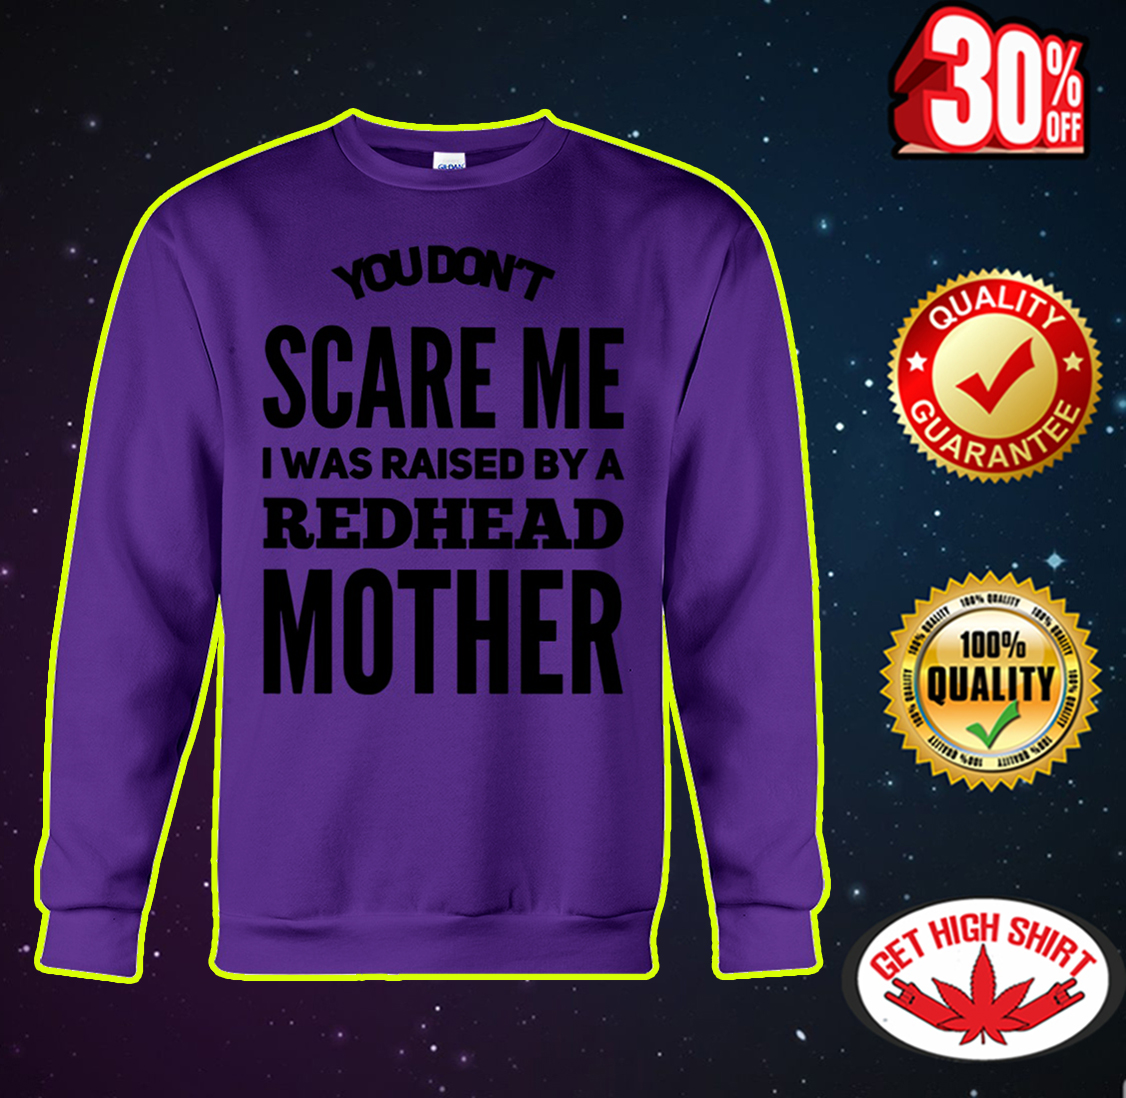 You don't scare me I was raised by a redhead mother sweatshirt